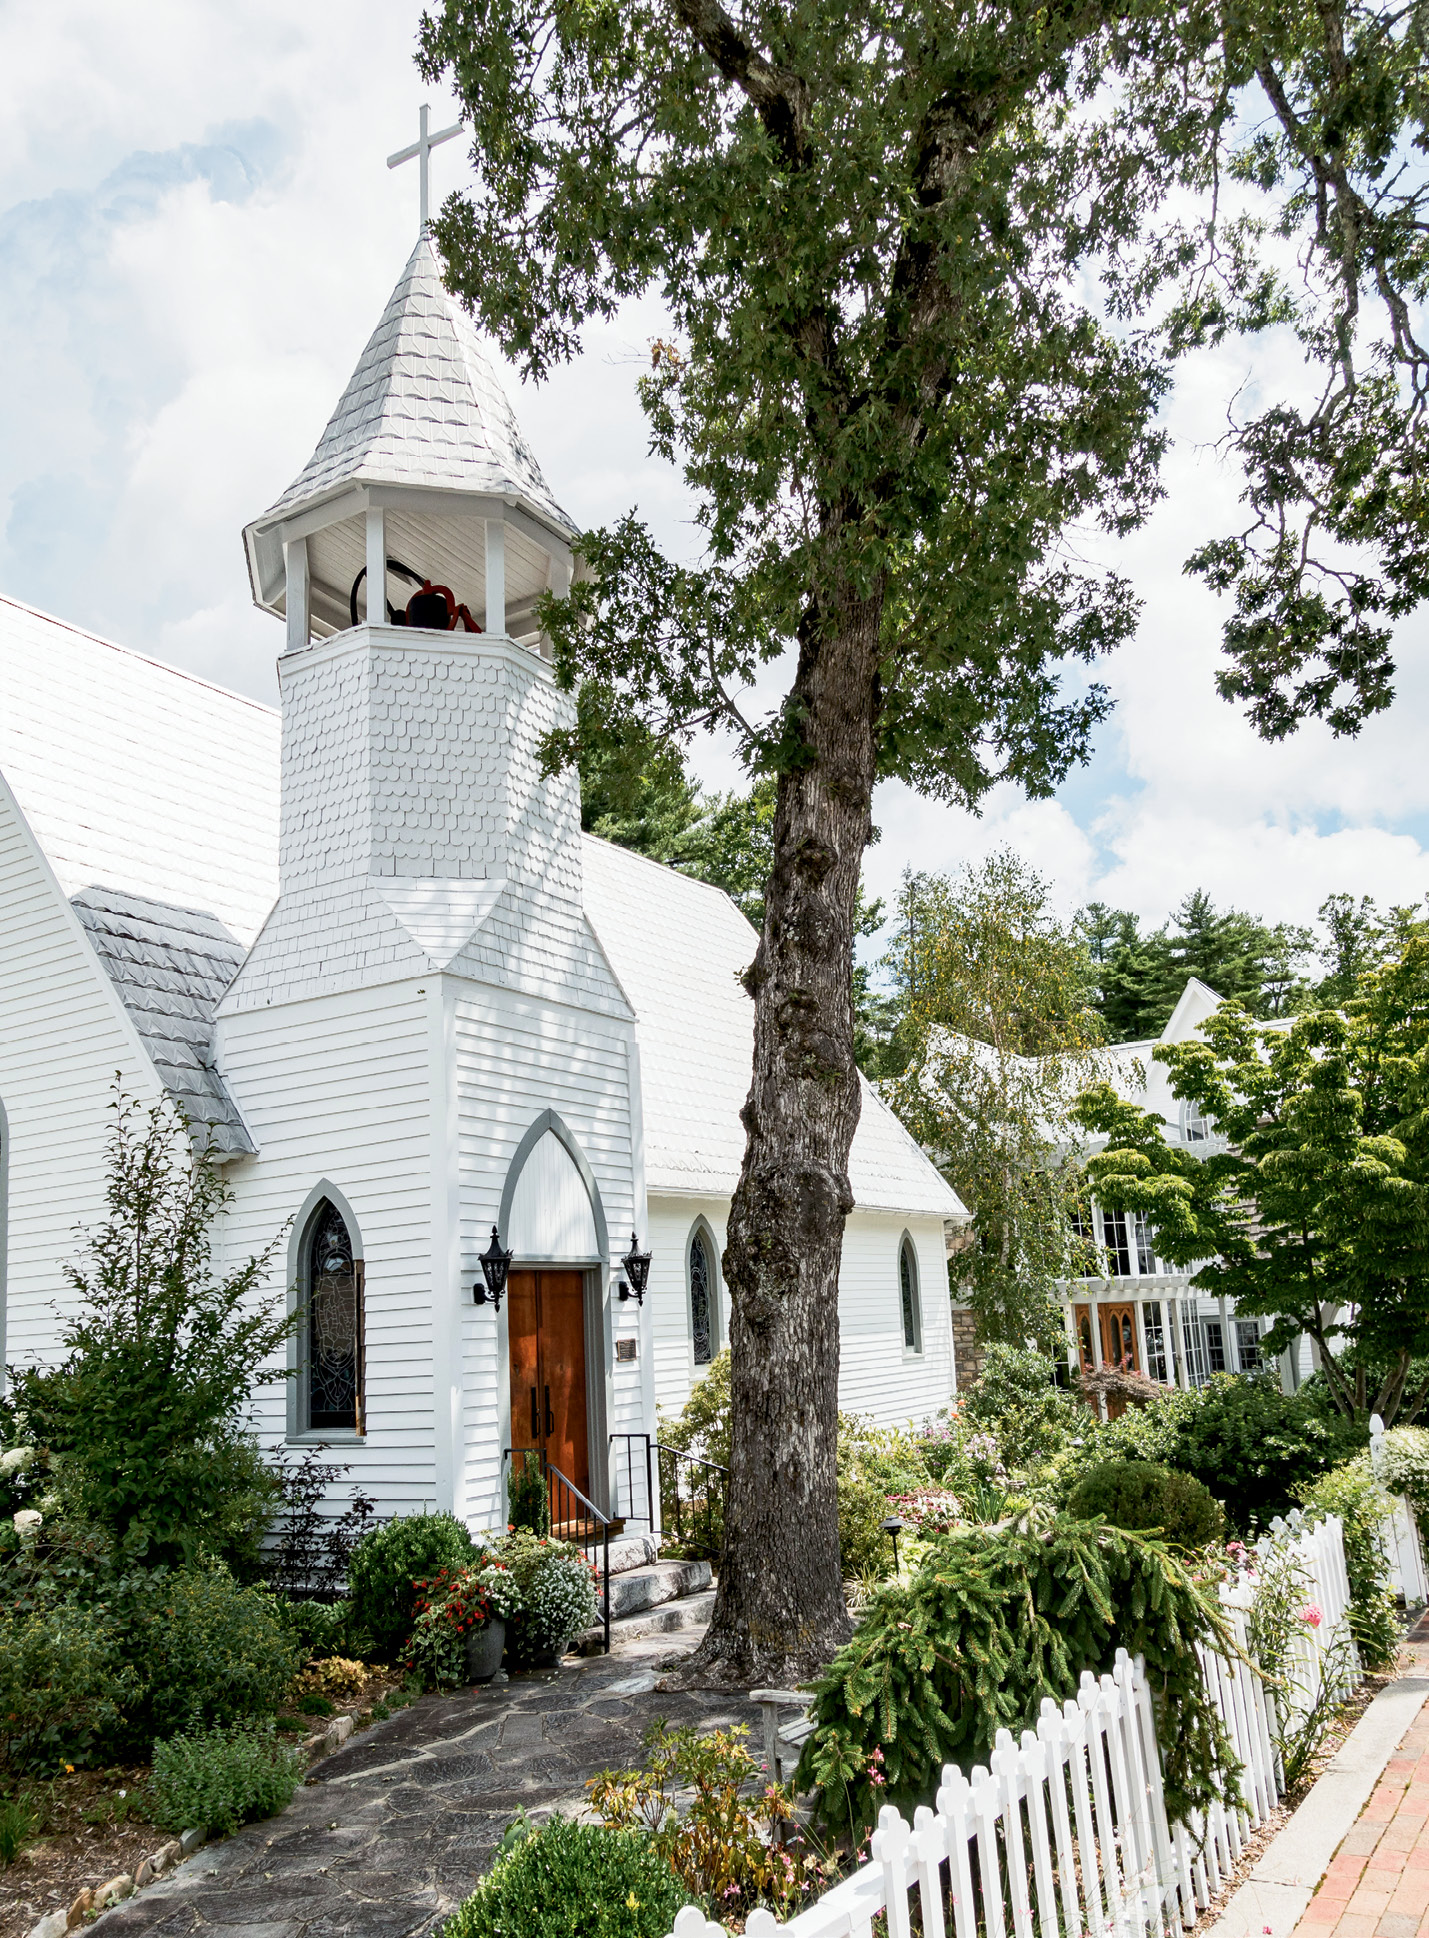 The historical Episcopal Church of the Incarnation on Main Street